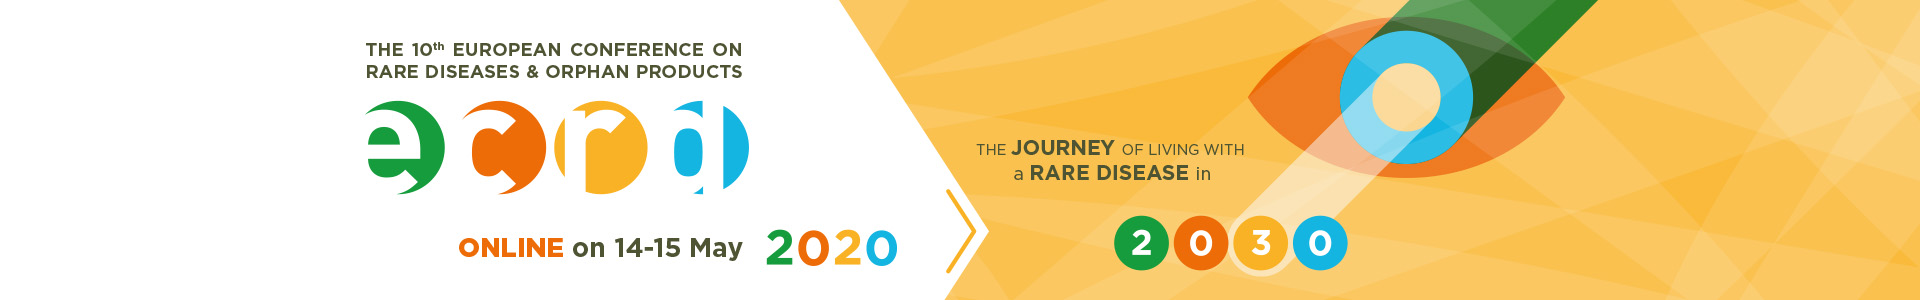 10th European Conference on Rare Diseases & Orphan Products 2020_Recorded sessions